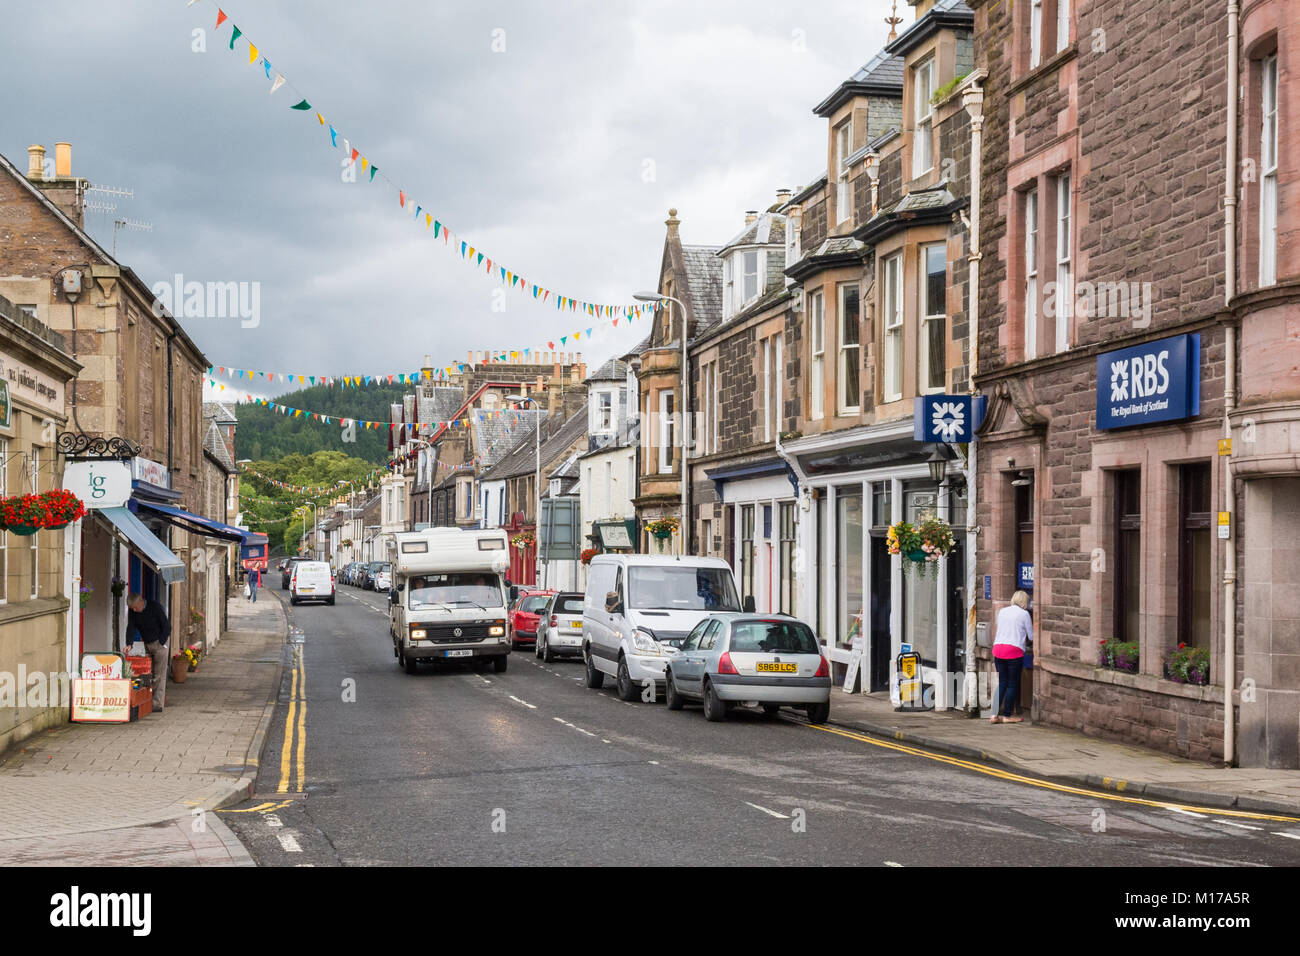 Comrie village - campervan driving through the Perthshire village of Comrie, Scotland, UK - Stock Image